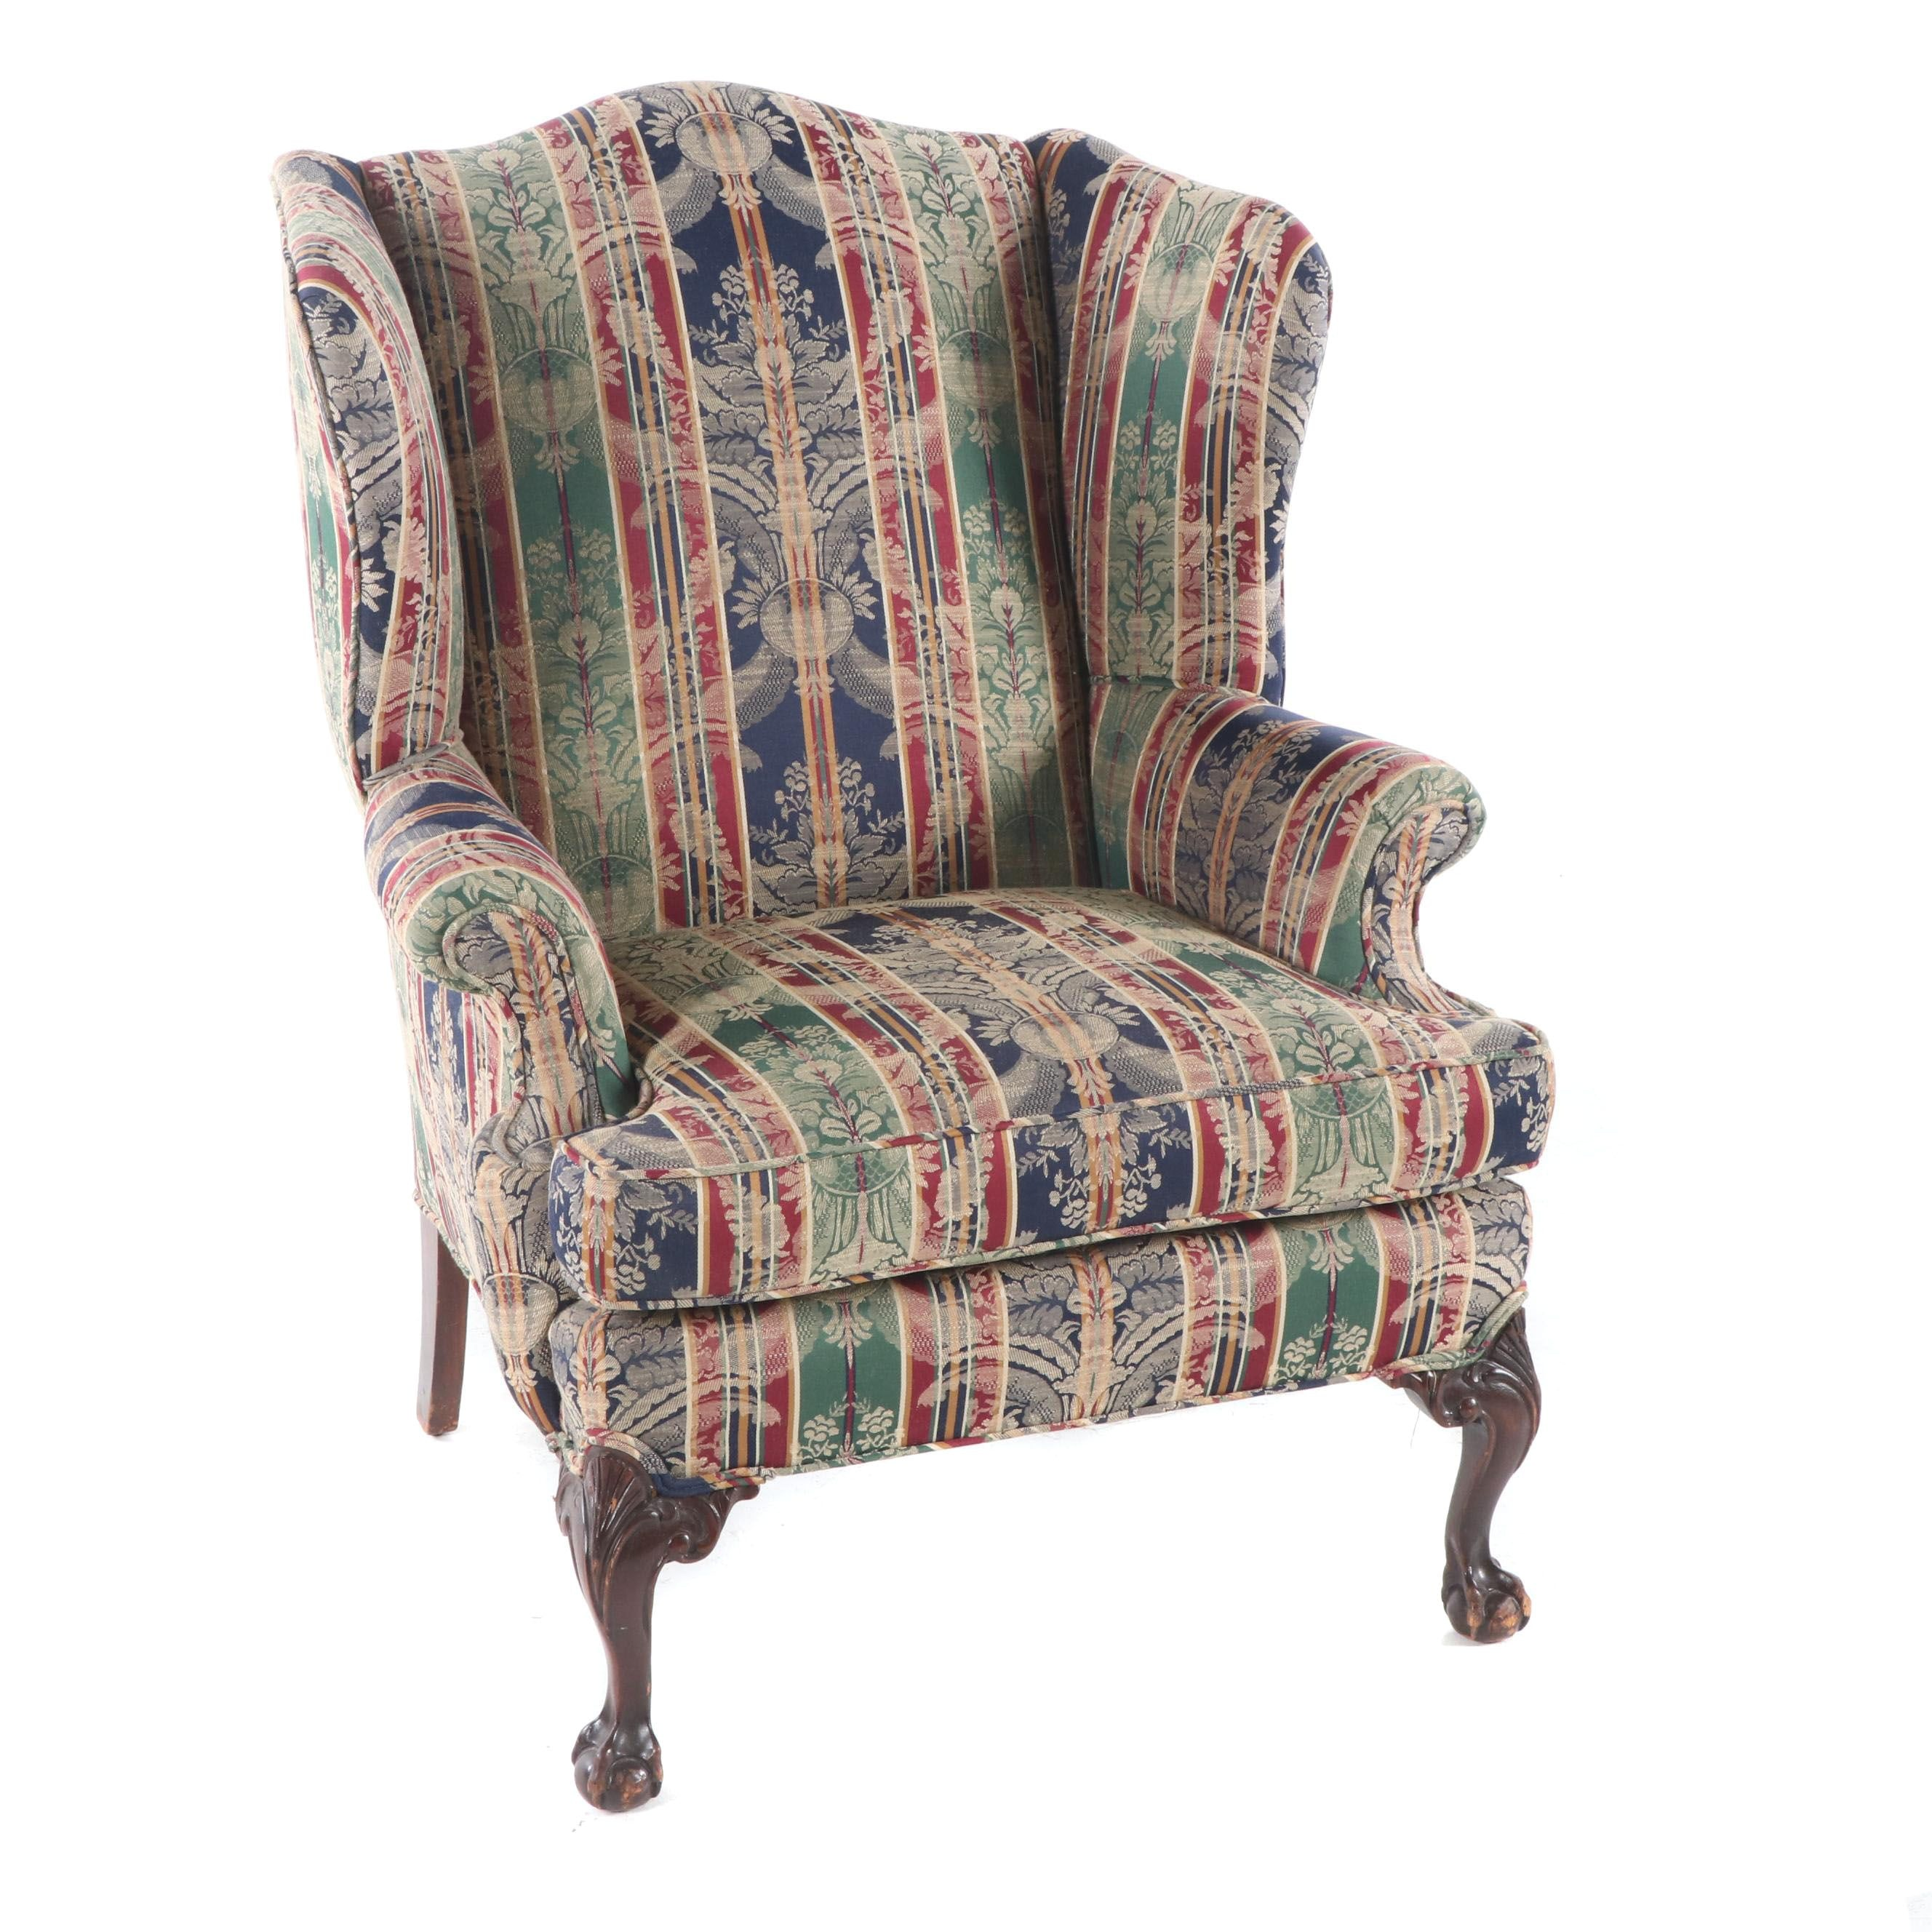 Chippendale Style Upholstered Wingback Chair, by Steve's Upholstery